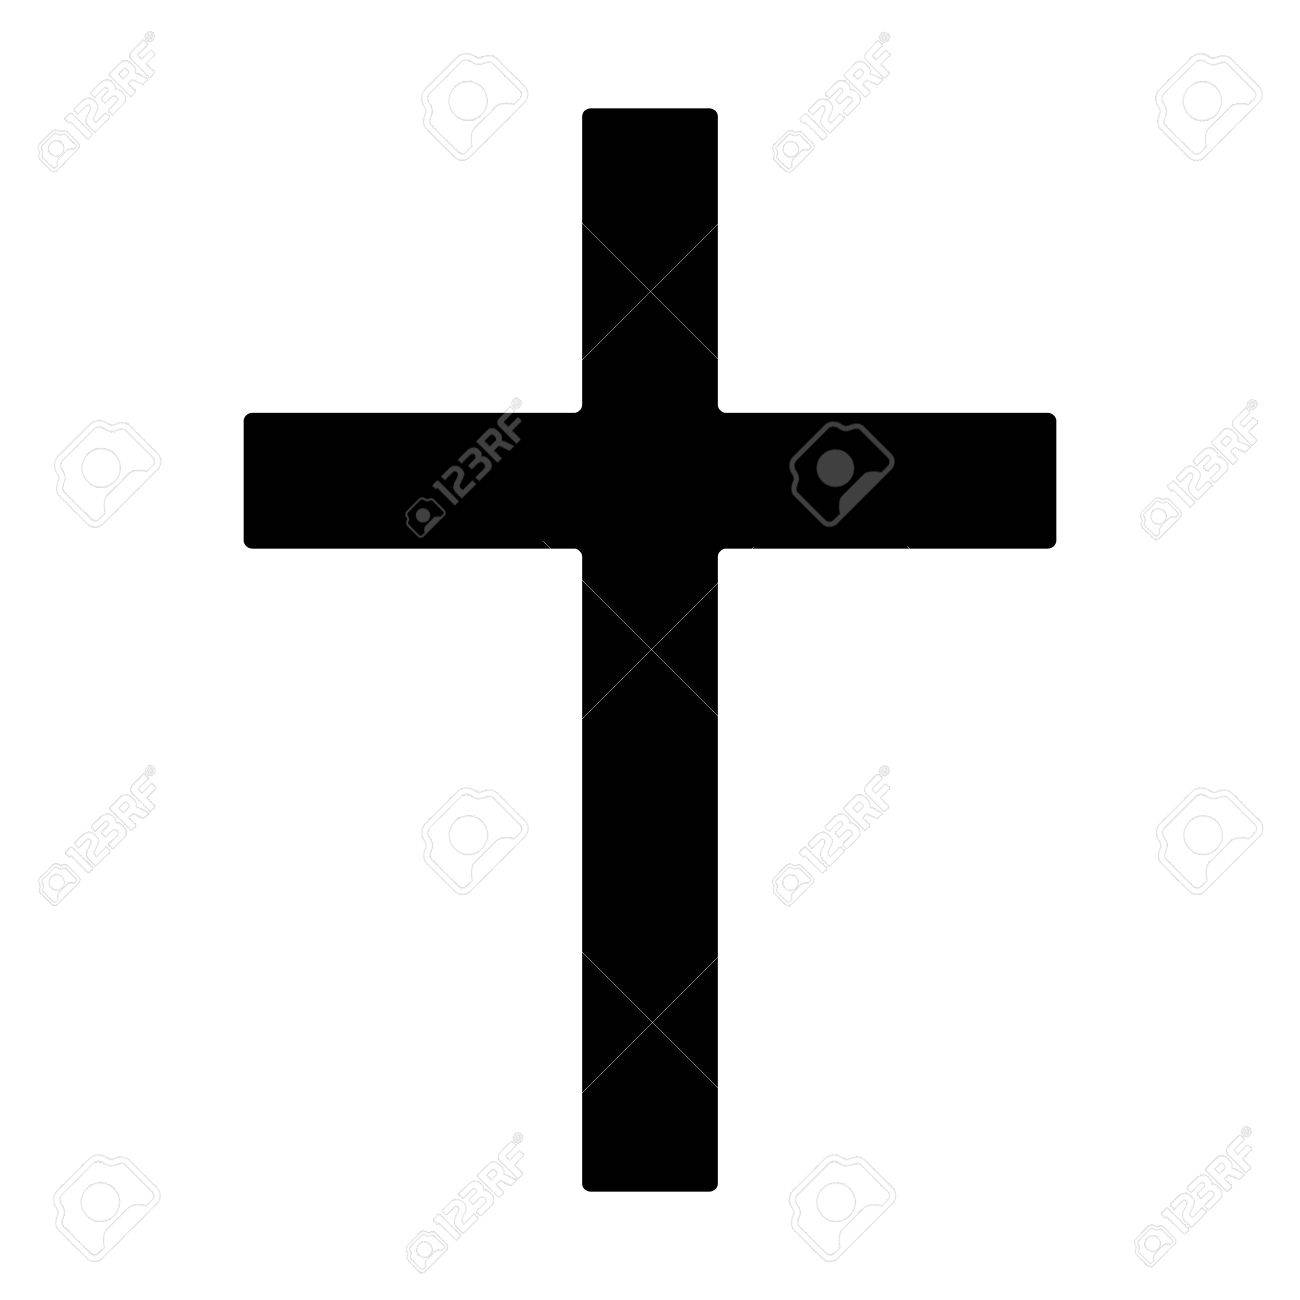 Christian cross - symbol of Christianity flat icon for apps and websites - 50020800